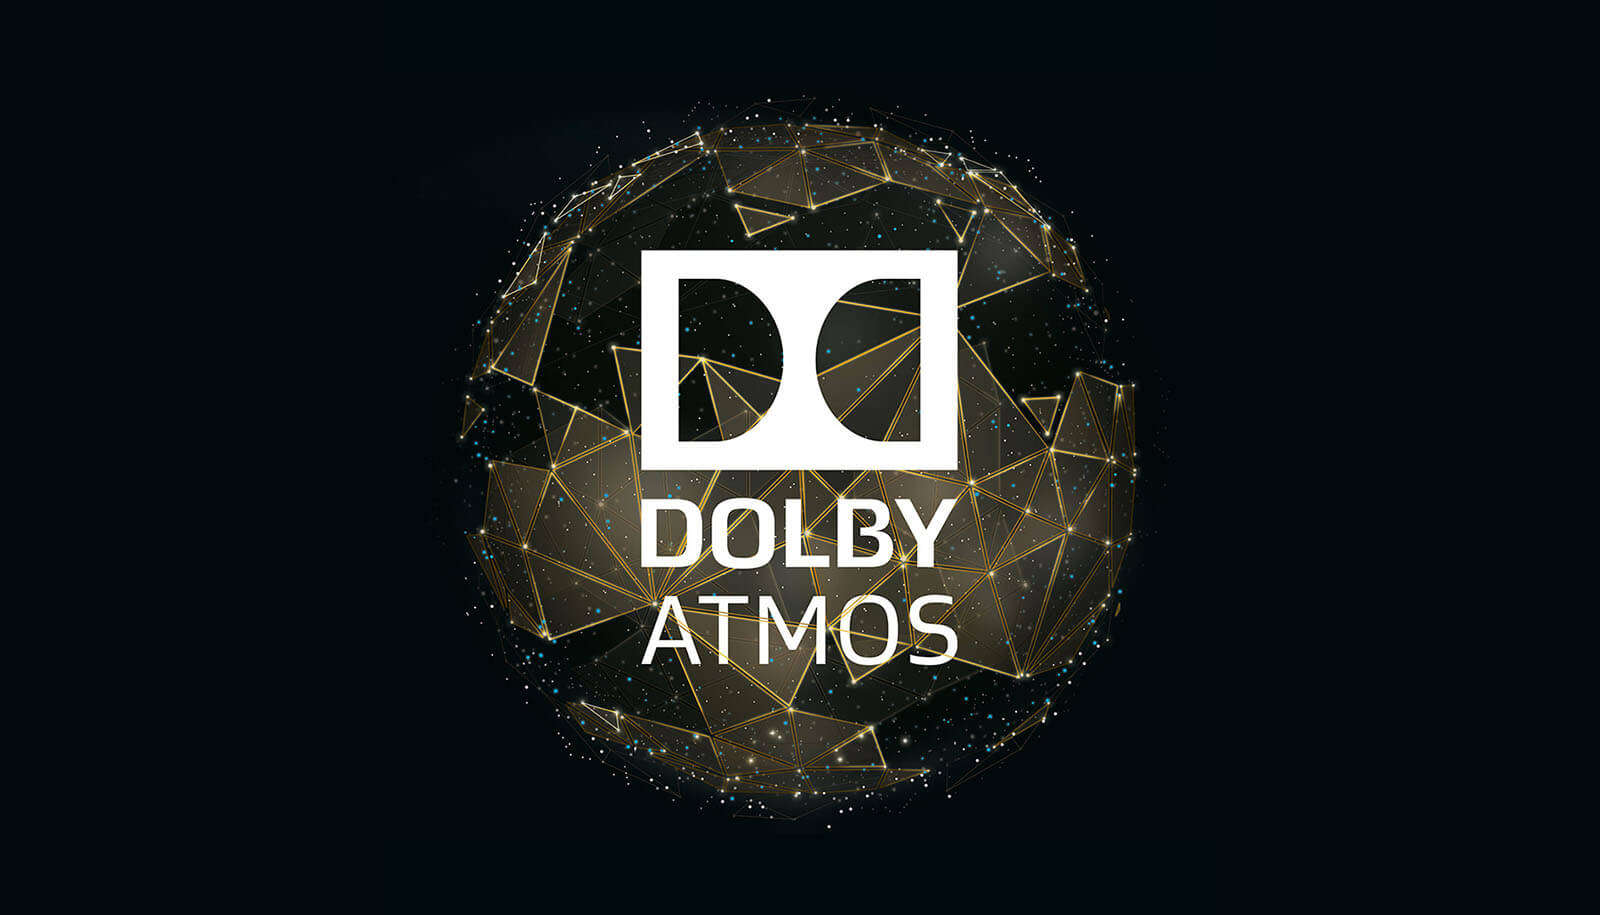 dolby digital dolby atmos packaging logo - gold